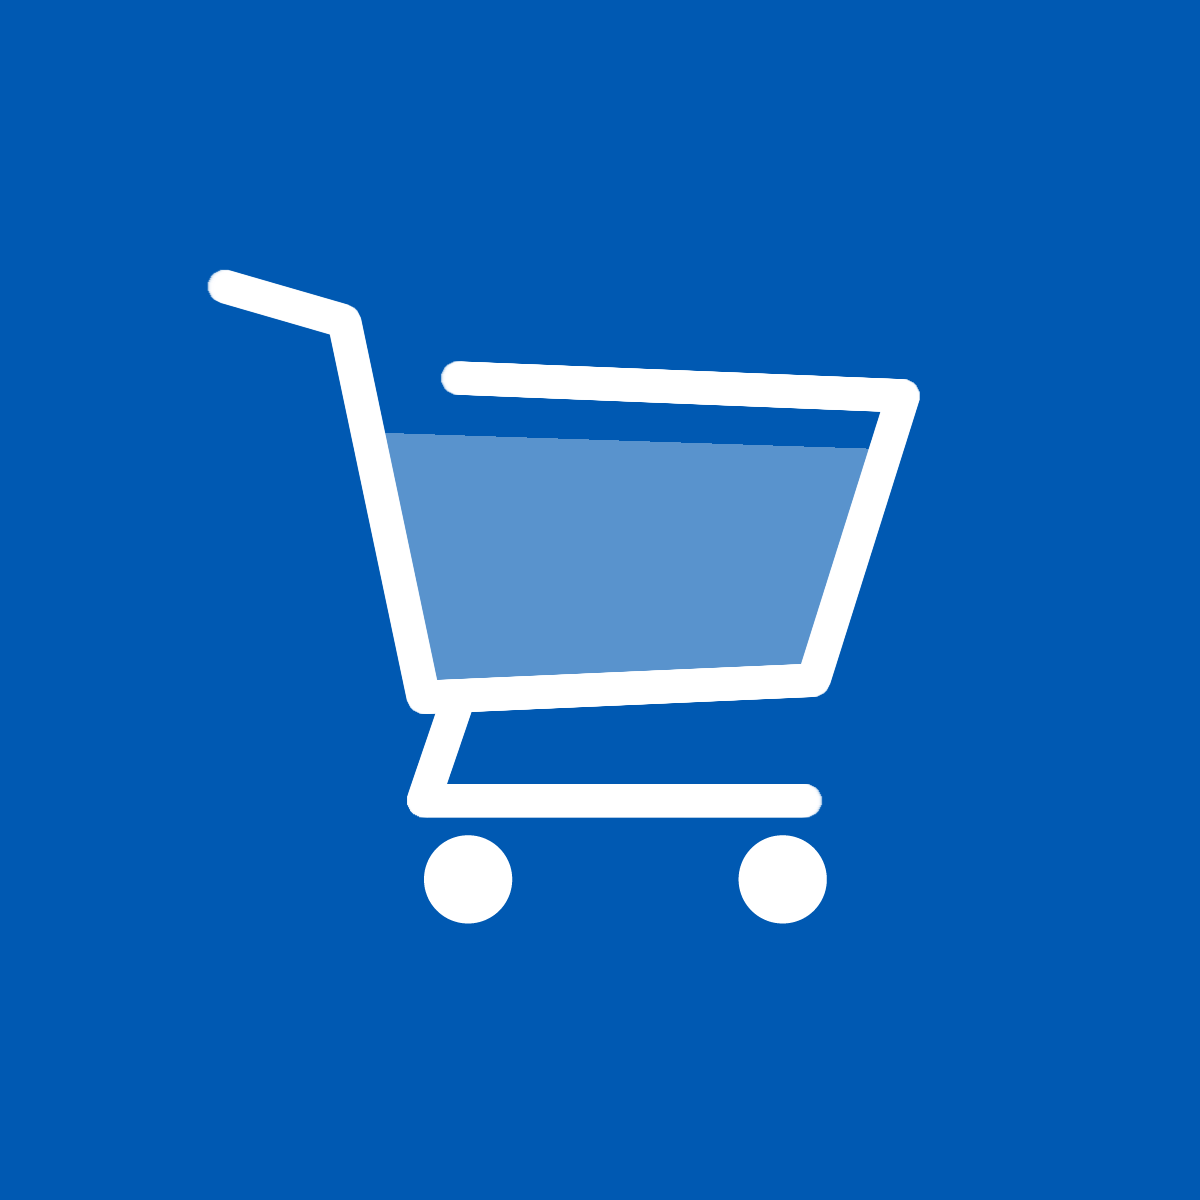 Hire Shopify Experts to integrate Add to cart button ‑ Nice app into a Shopify store